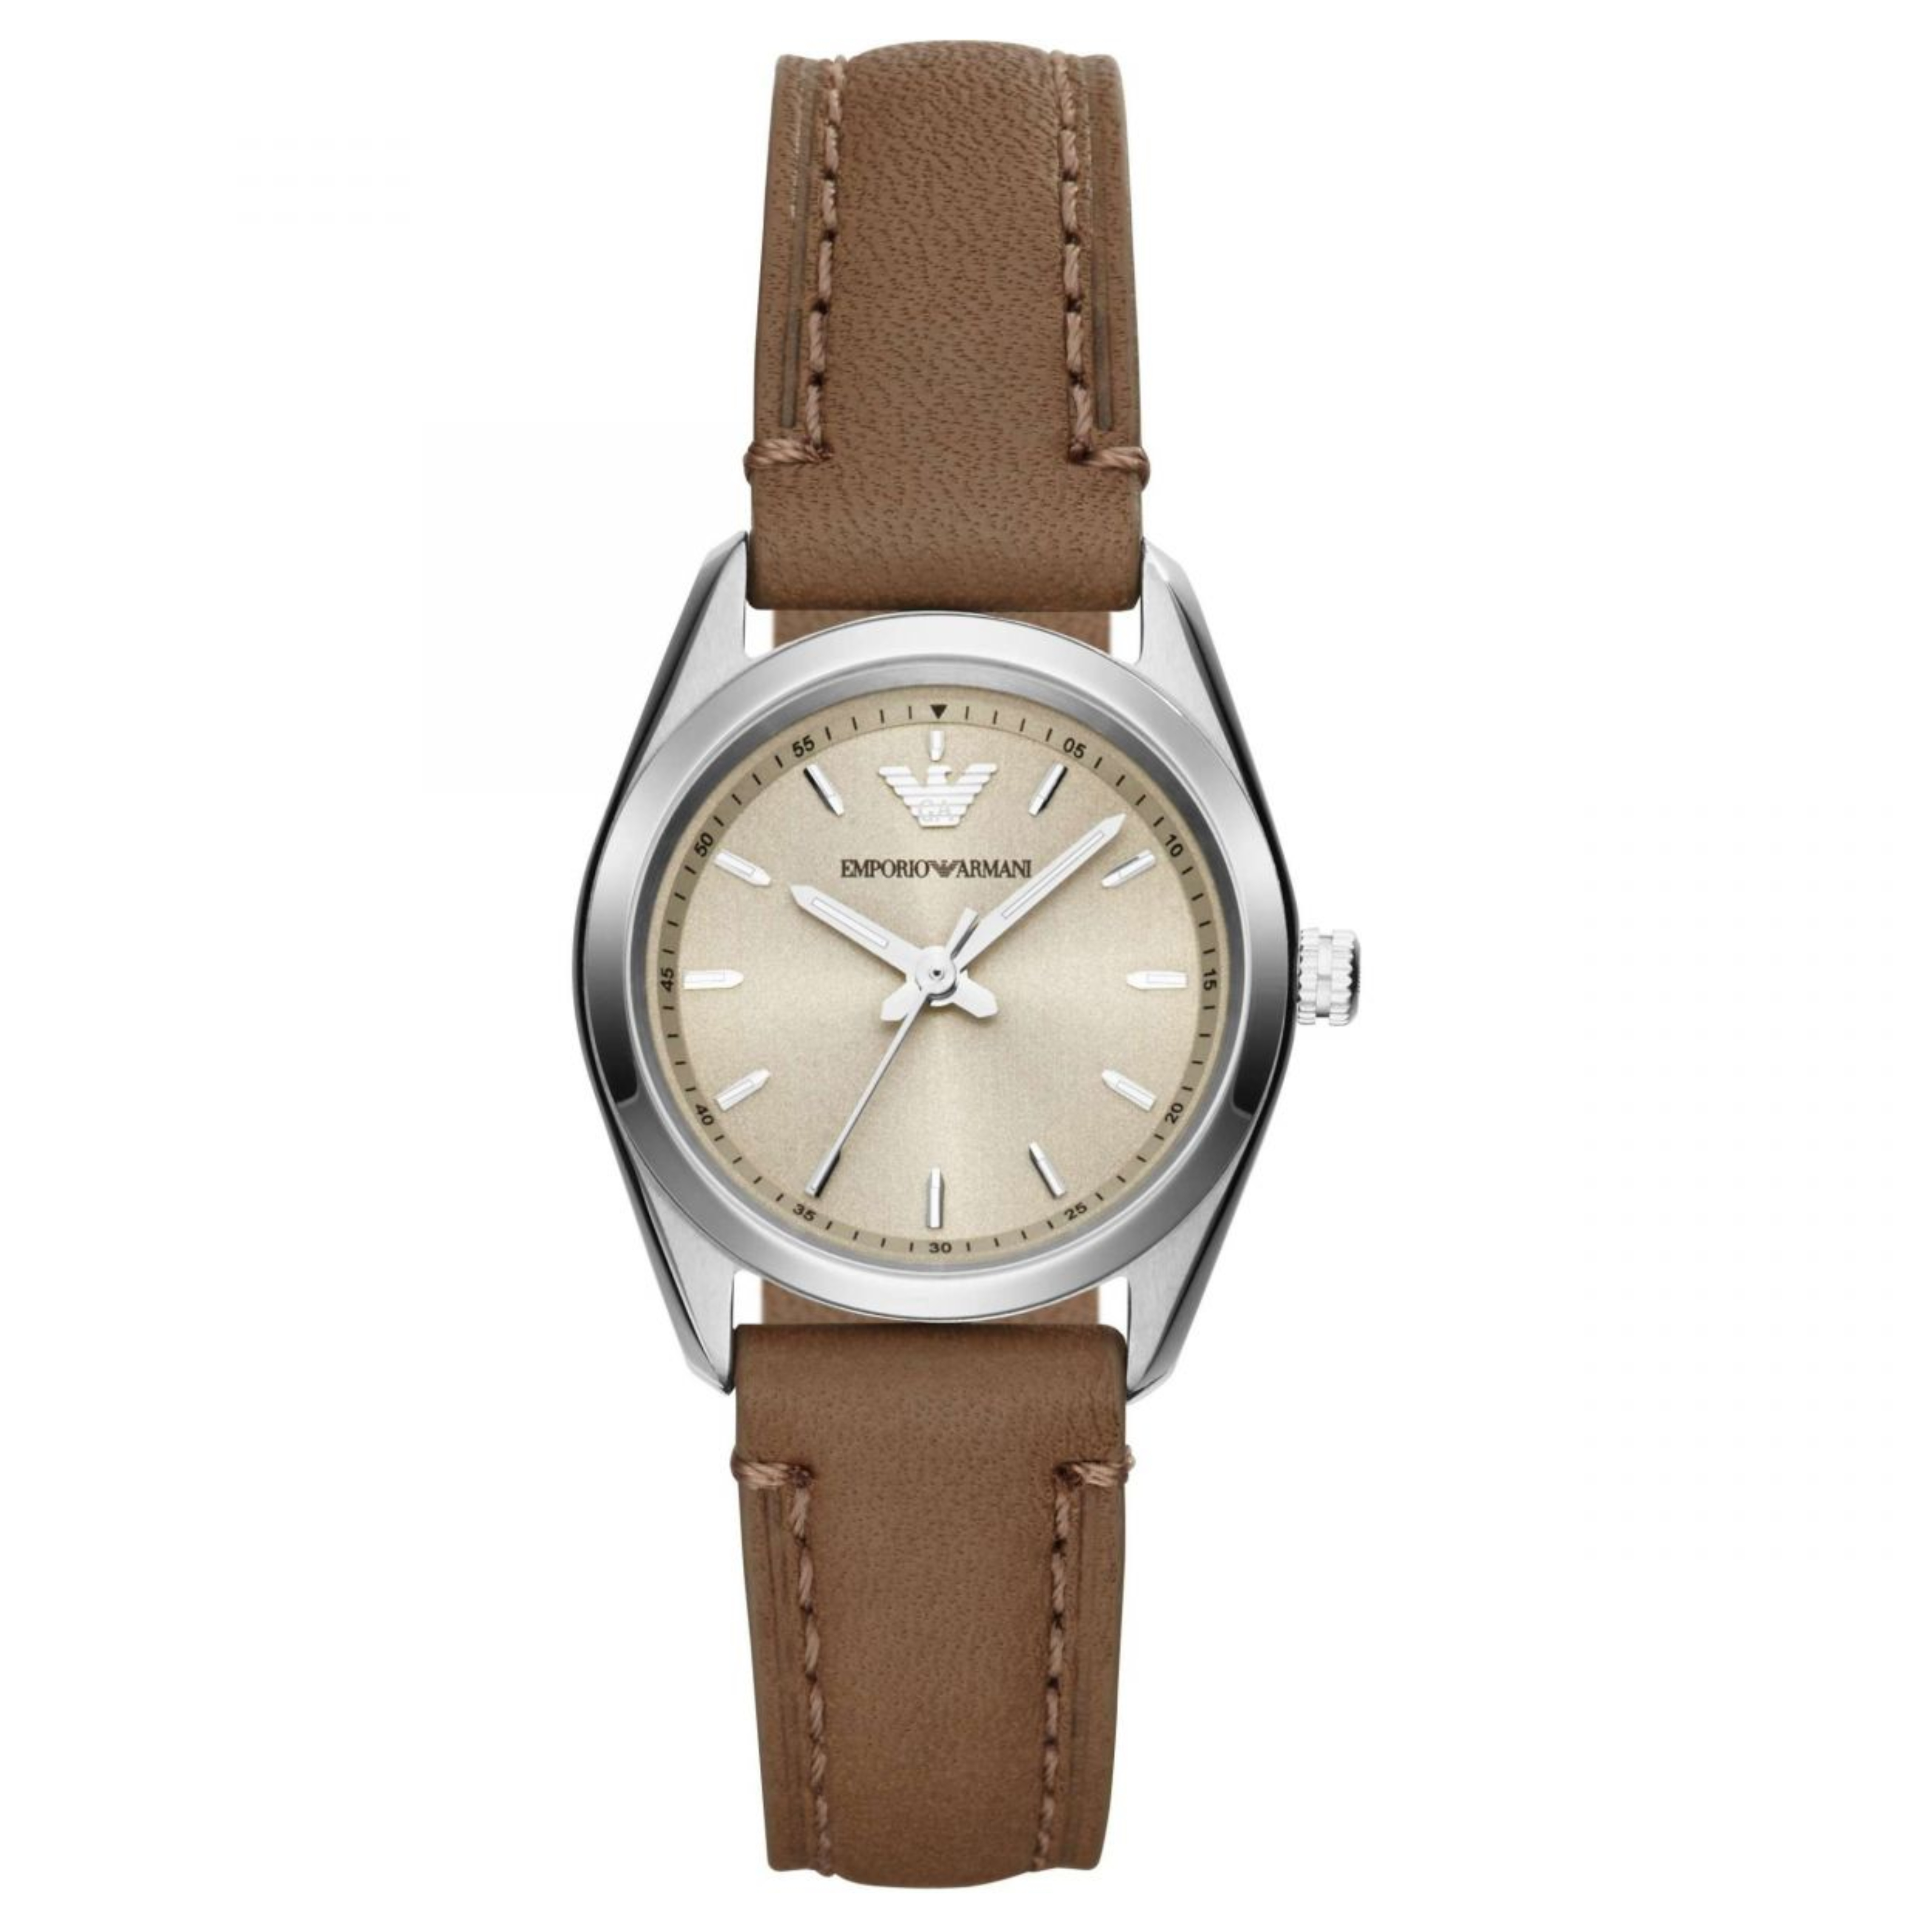 Emporio Armani Women's Watch?Round Cream Dial?Brown Leather Strap?AR6027